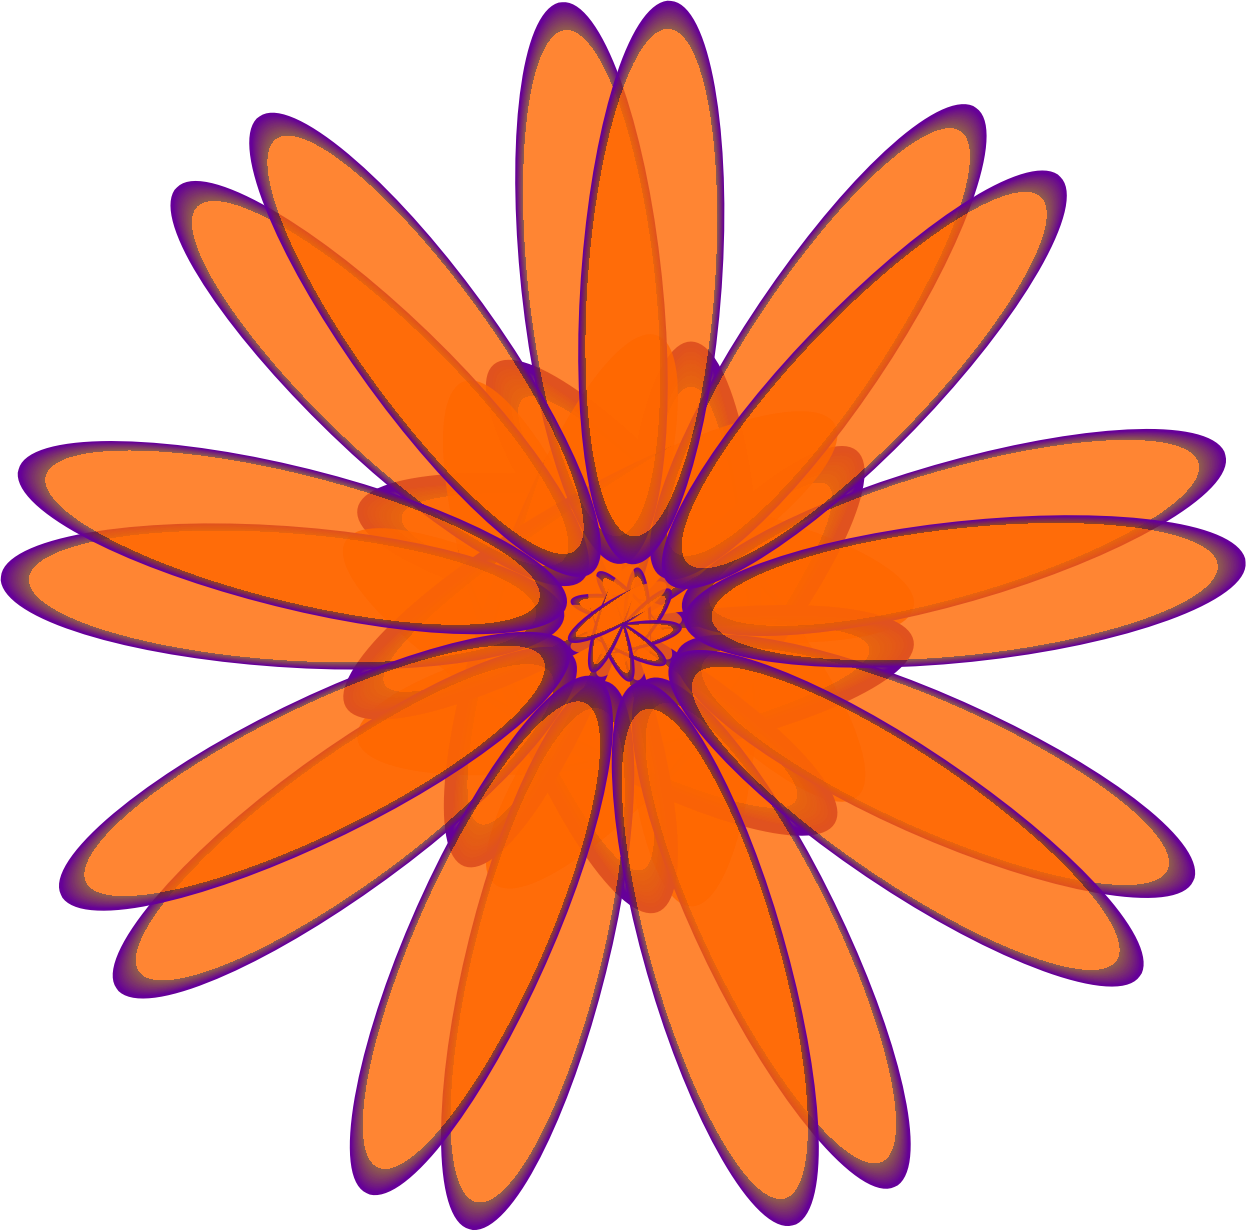 Orange Daisy by genolve